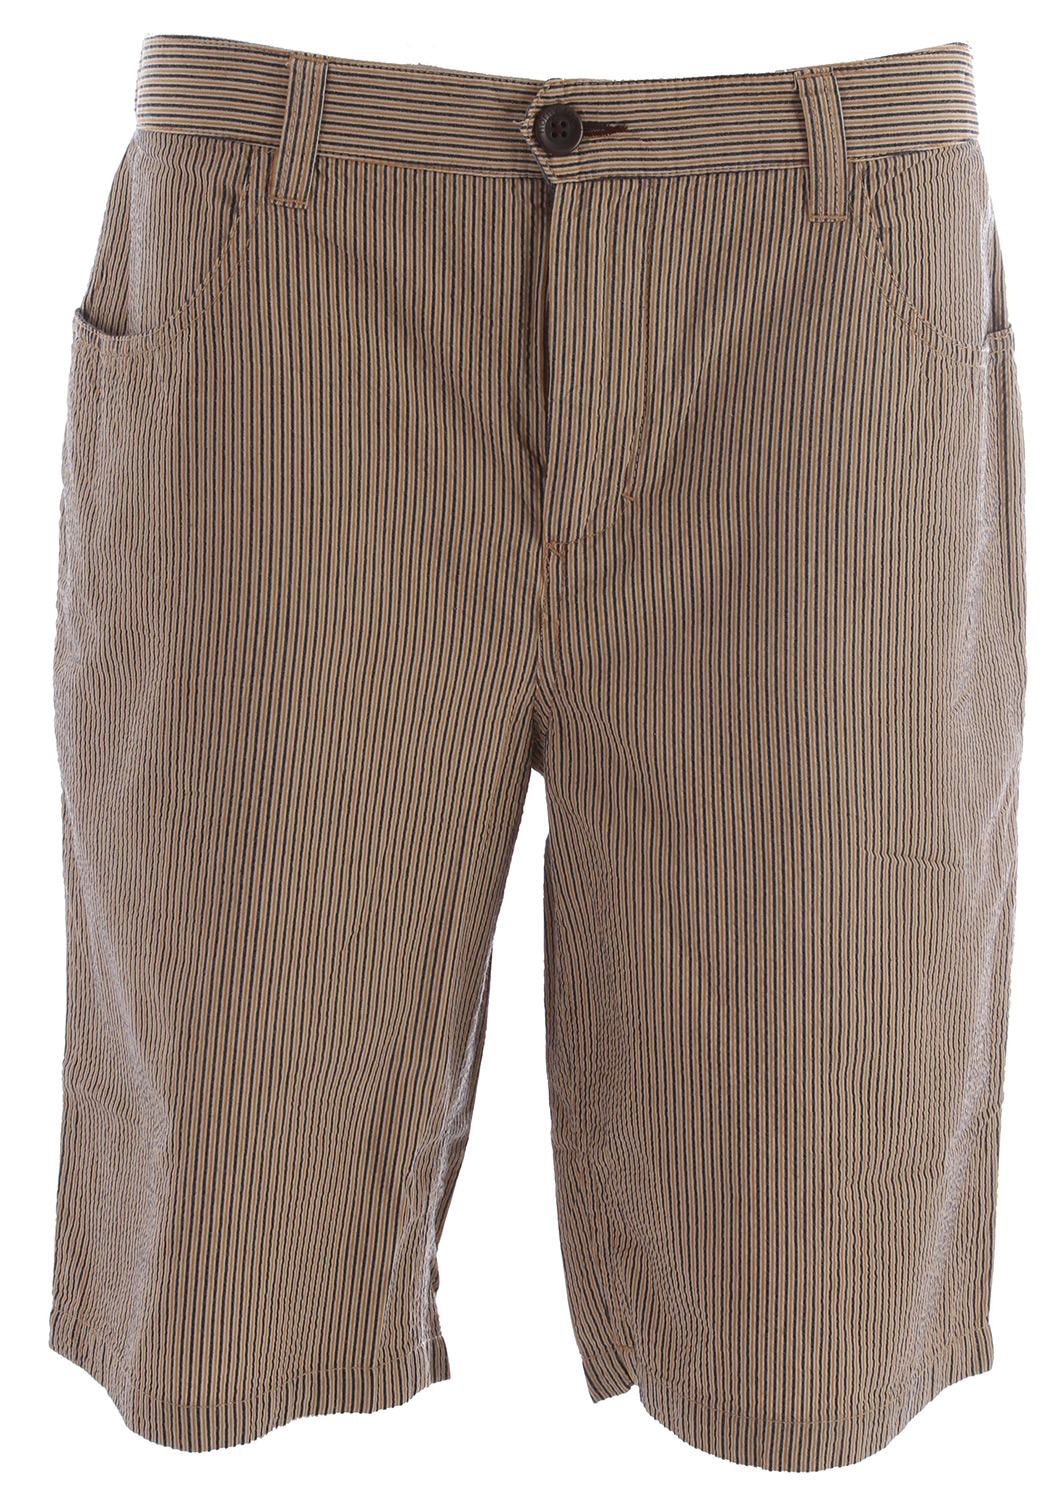 Key Features of the Horny Toad Seersucka Shorts: Fabric: Seersucka Is 100% Organic Cotton Zip Fly With Button Closure Drop-In Front Pockets, One With Pocketin-Pocket Double-Welt Back Pockets With Button Closure 11? Inseam - $47.95